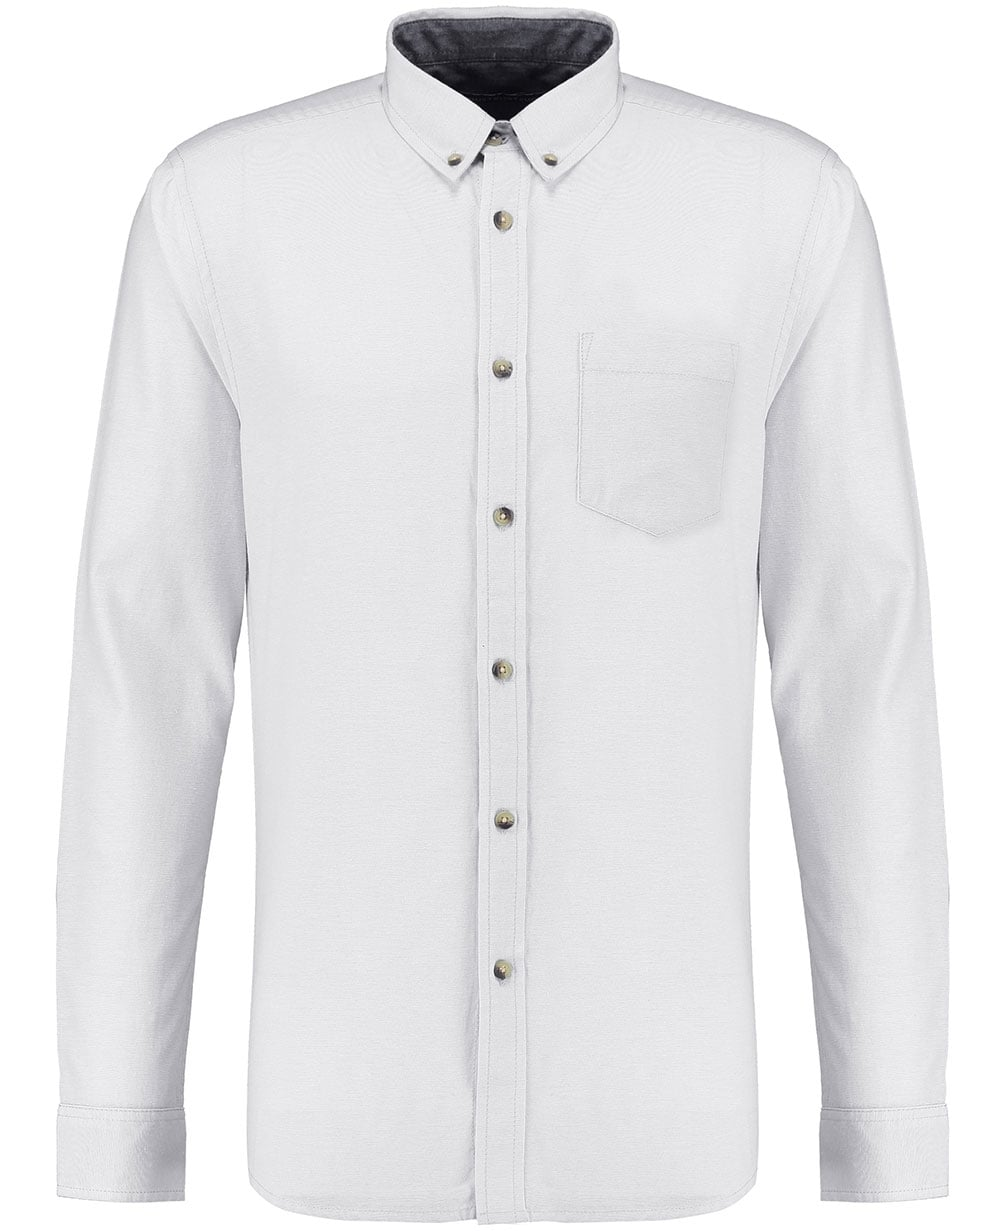 Find great deals on eBay for Short Sleeve Oxford Shirt in Casual Shirts for Different Occasions. Shop with confidence.